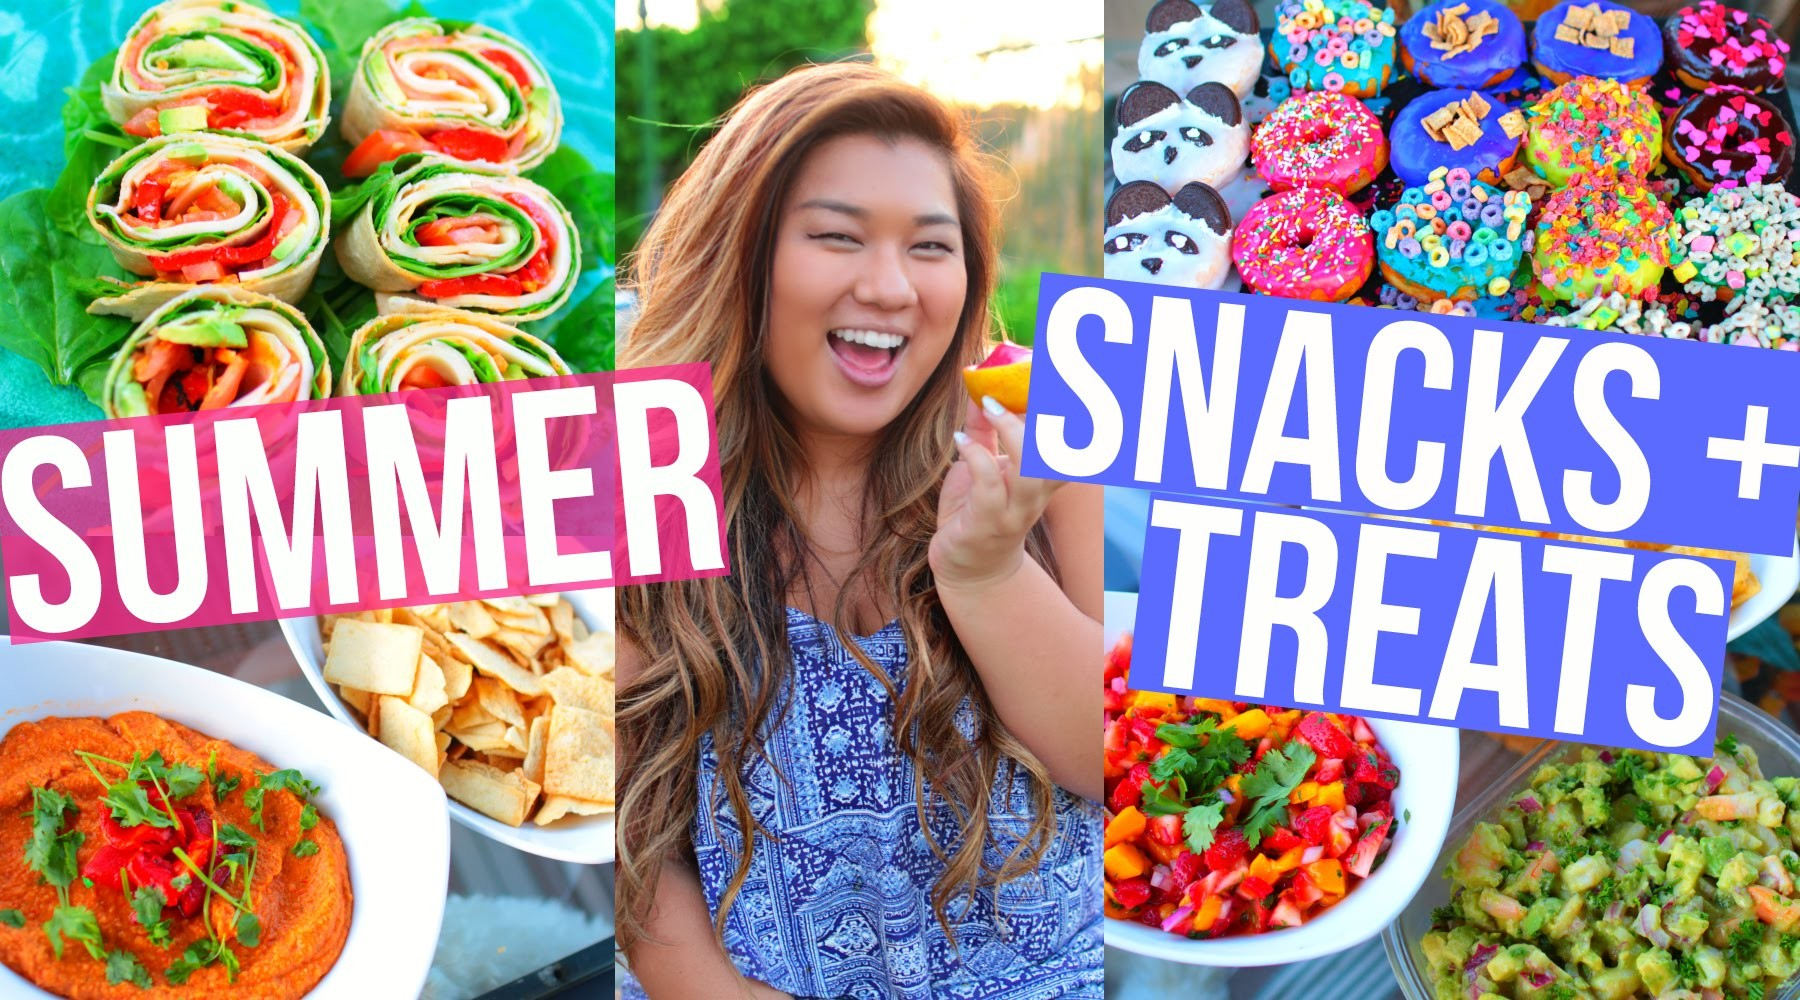 DIY Summer Snacks + Treats! Cute + Easy!